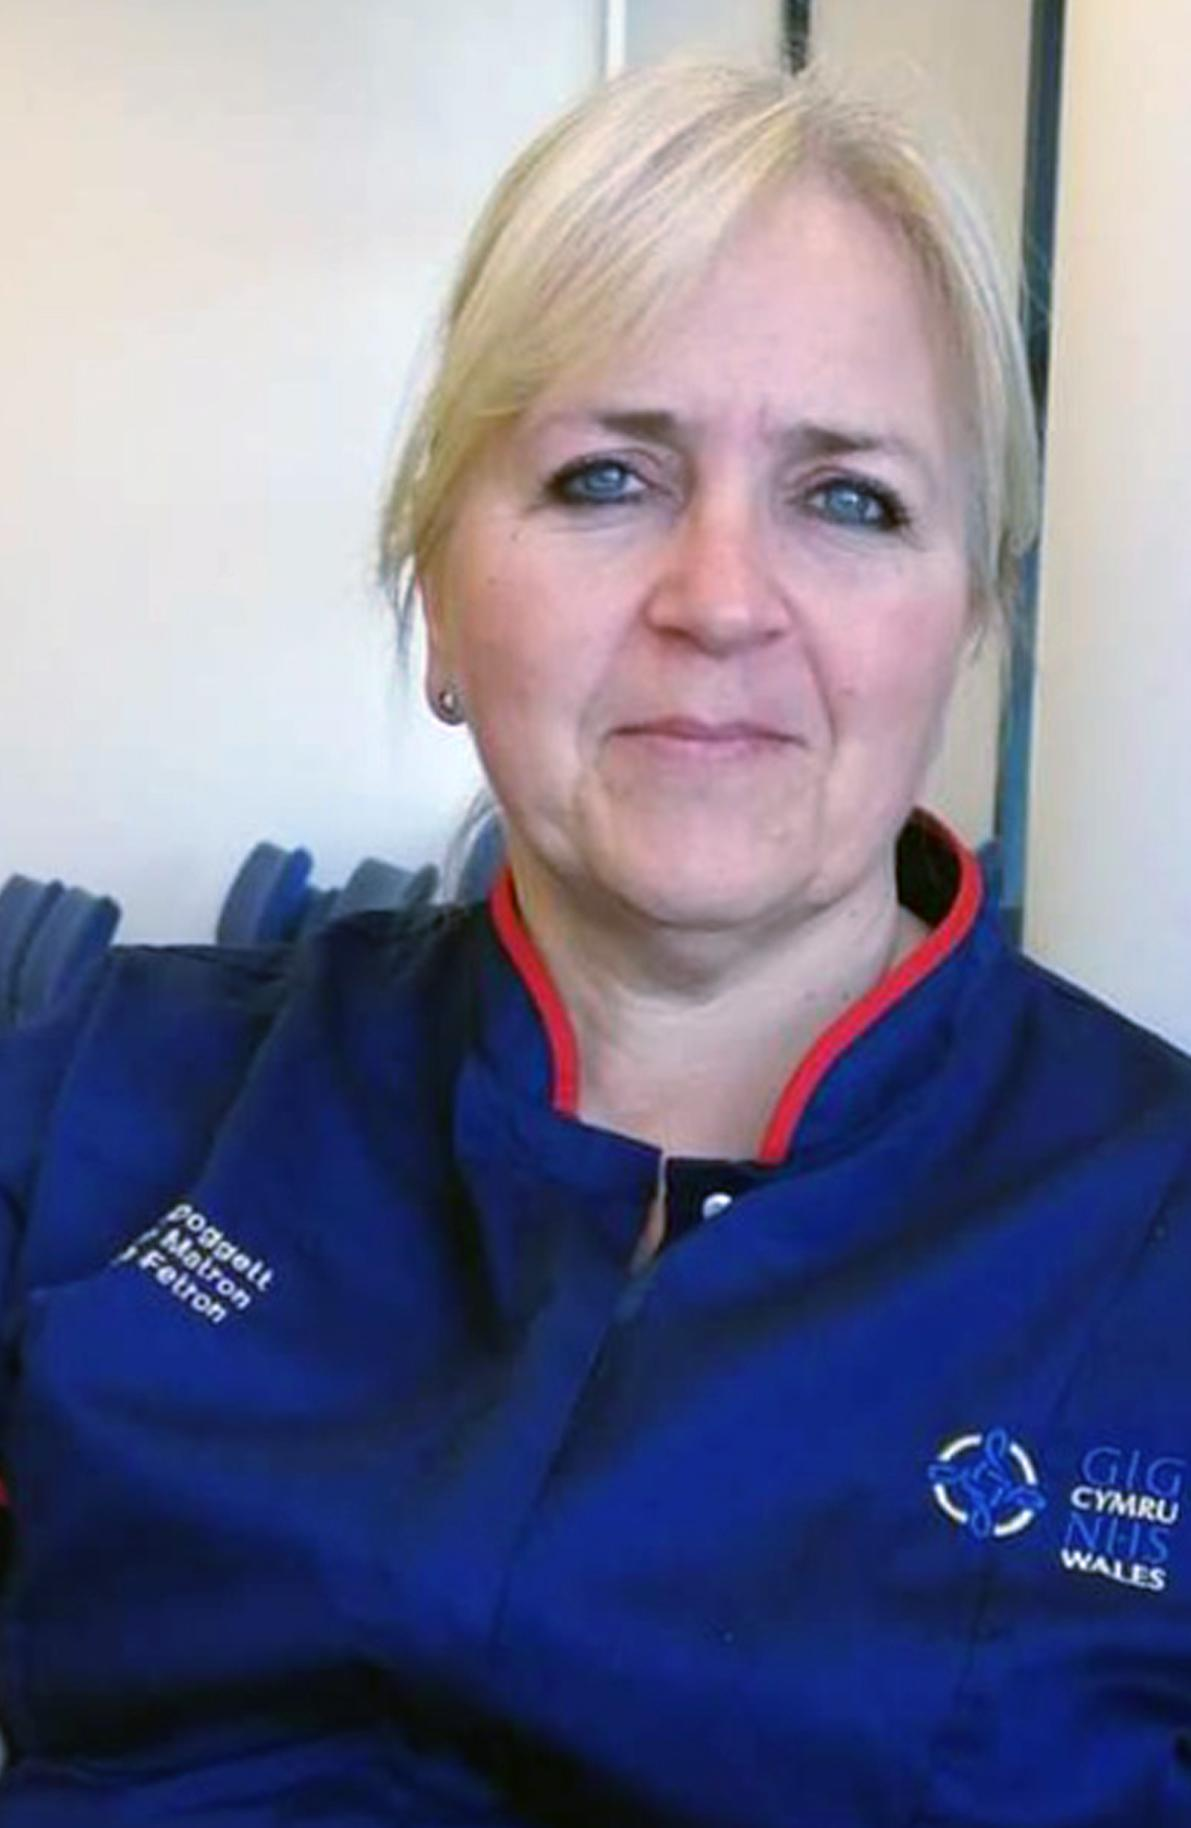 Carol Doggett is one of the nurses caring for sick patients at Morriston Hospital (Swansea Bay University Health Board/PA).